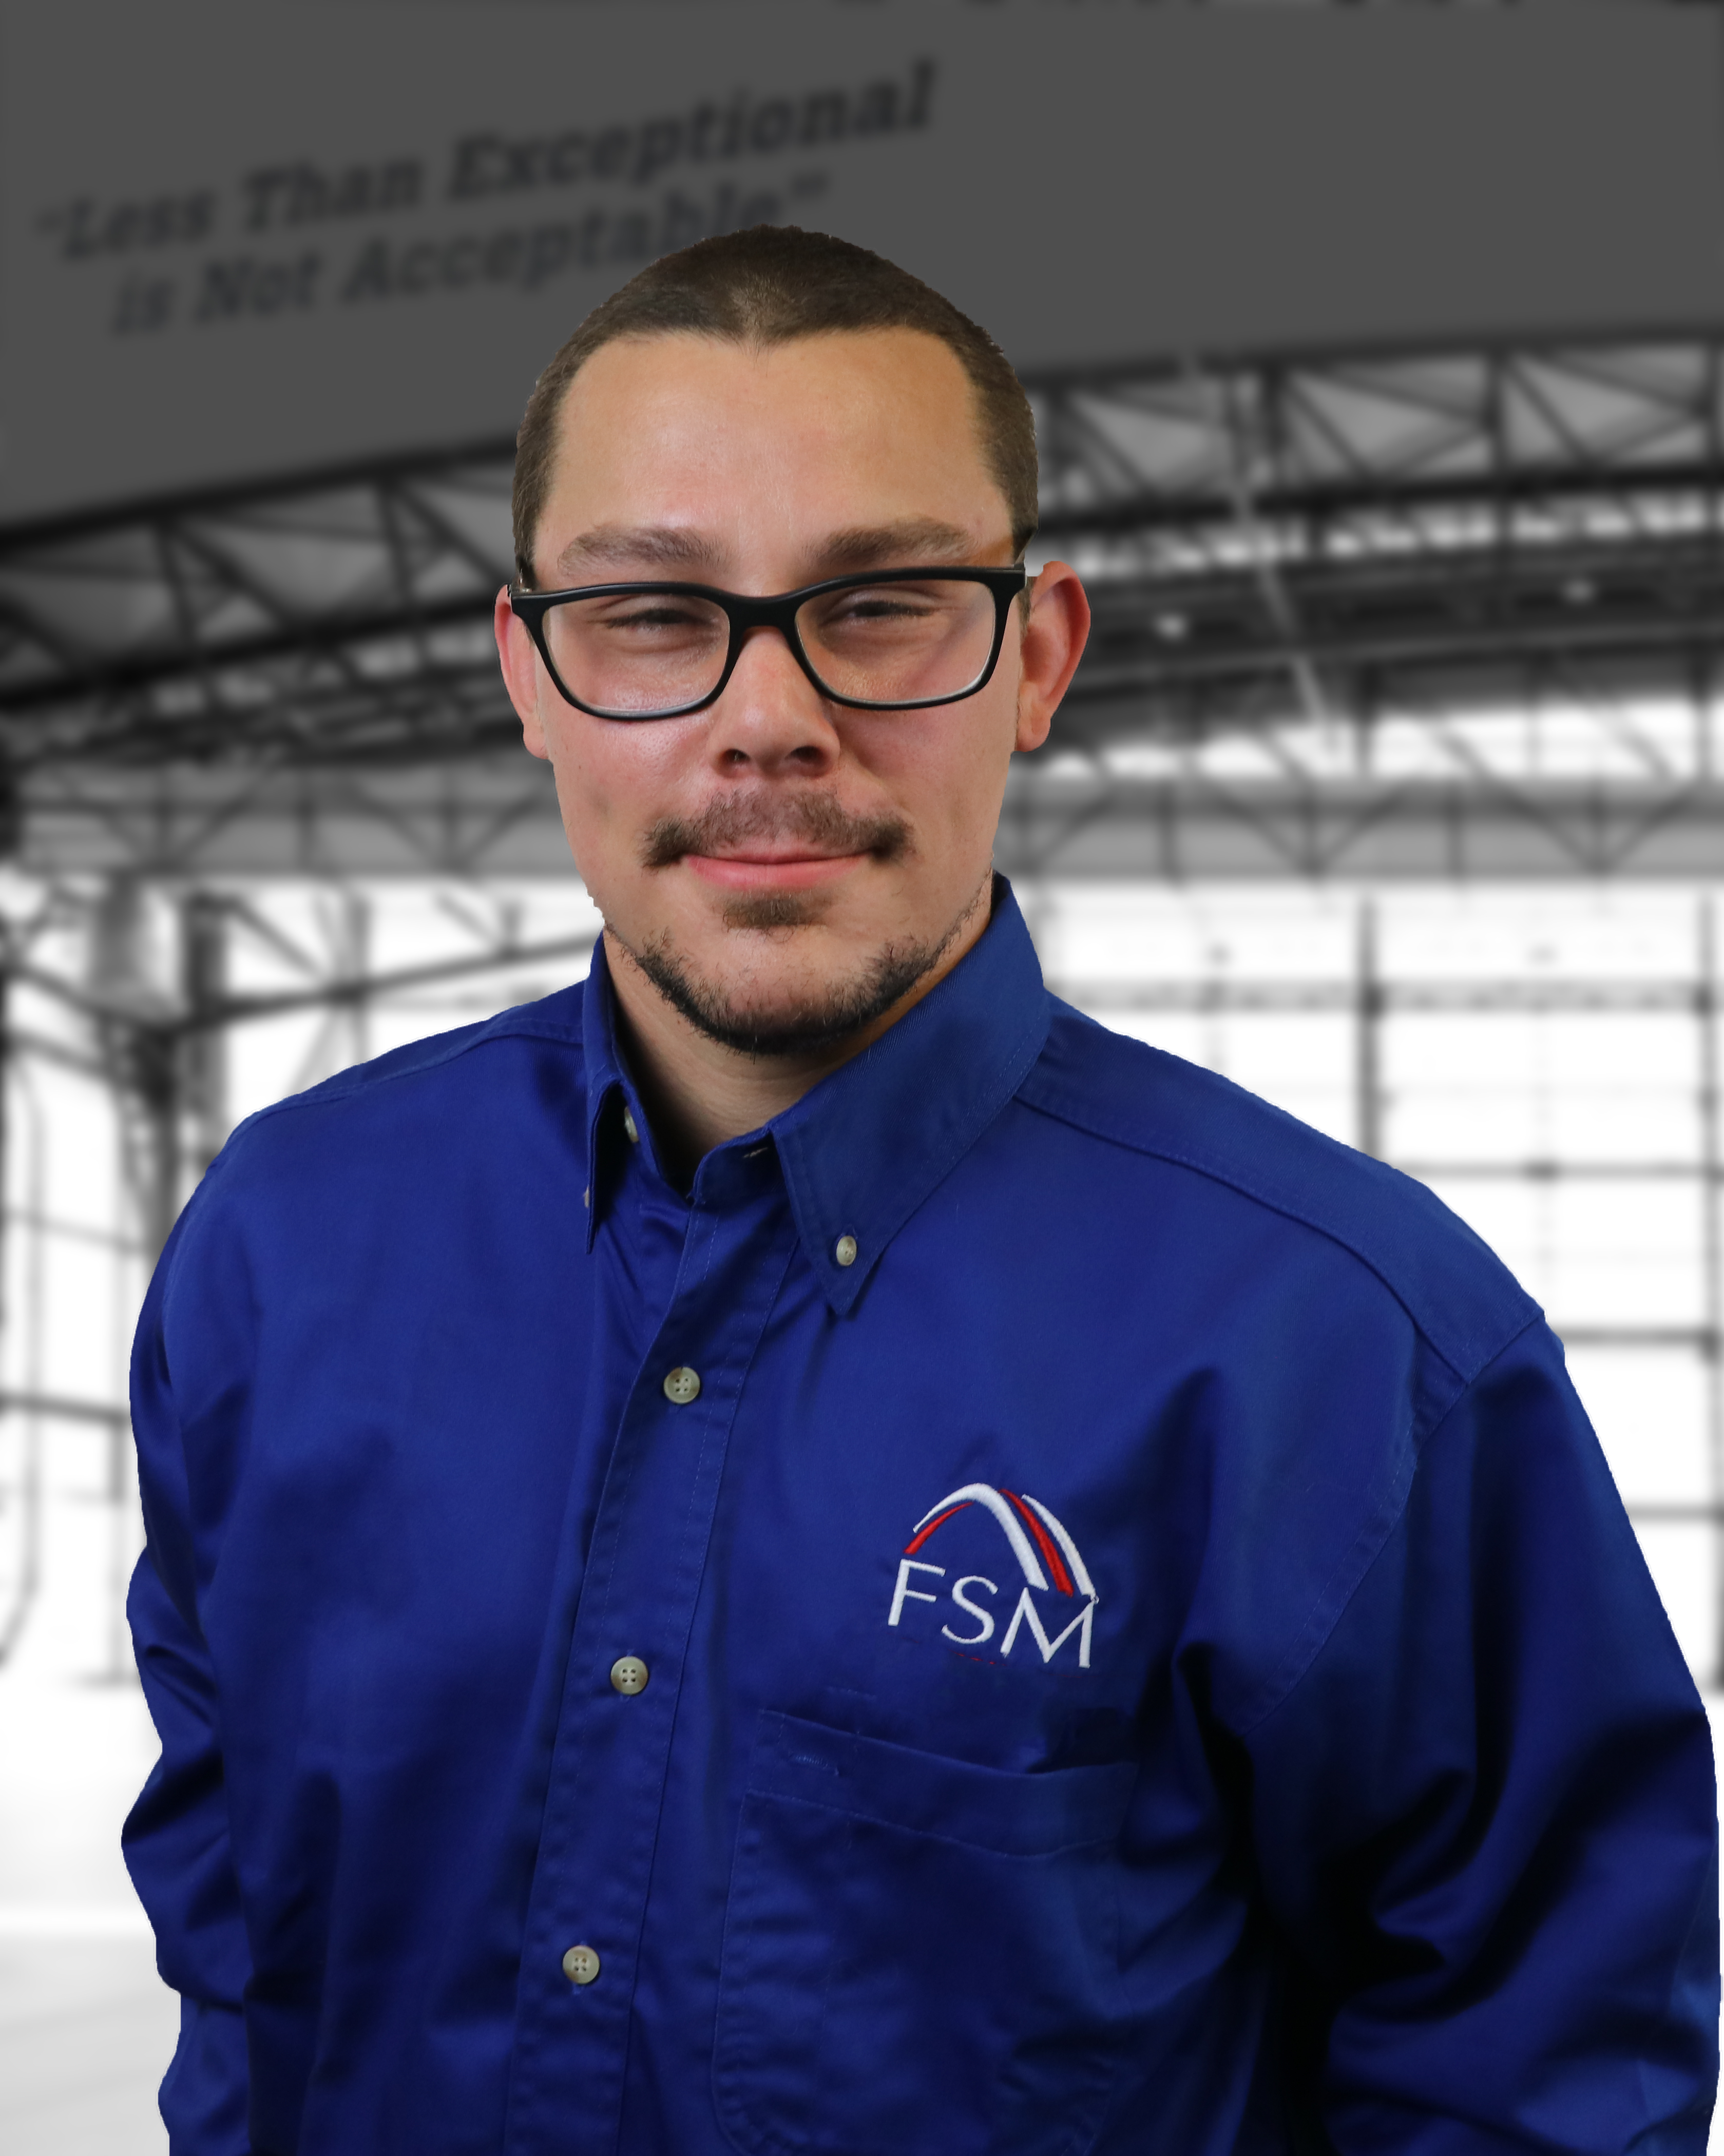 FSM Jacob Shoemaker Foreman